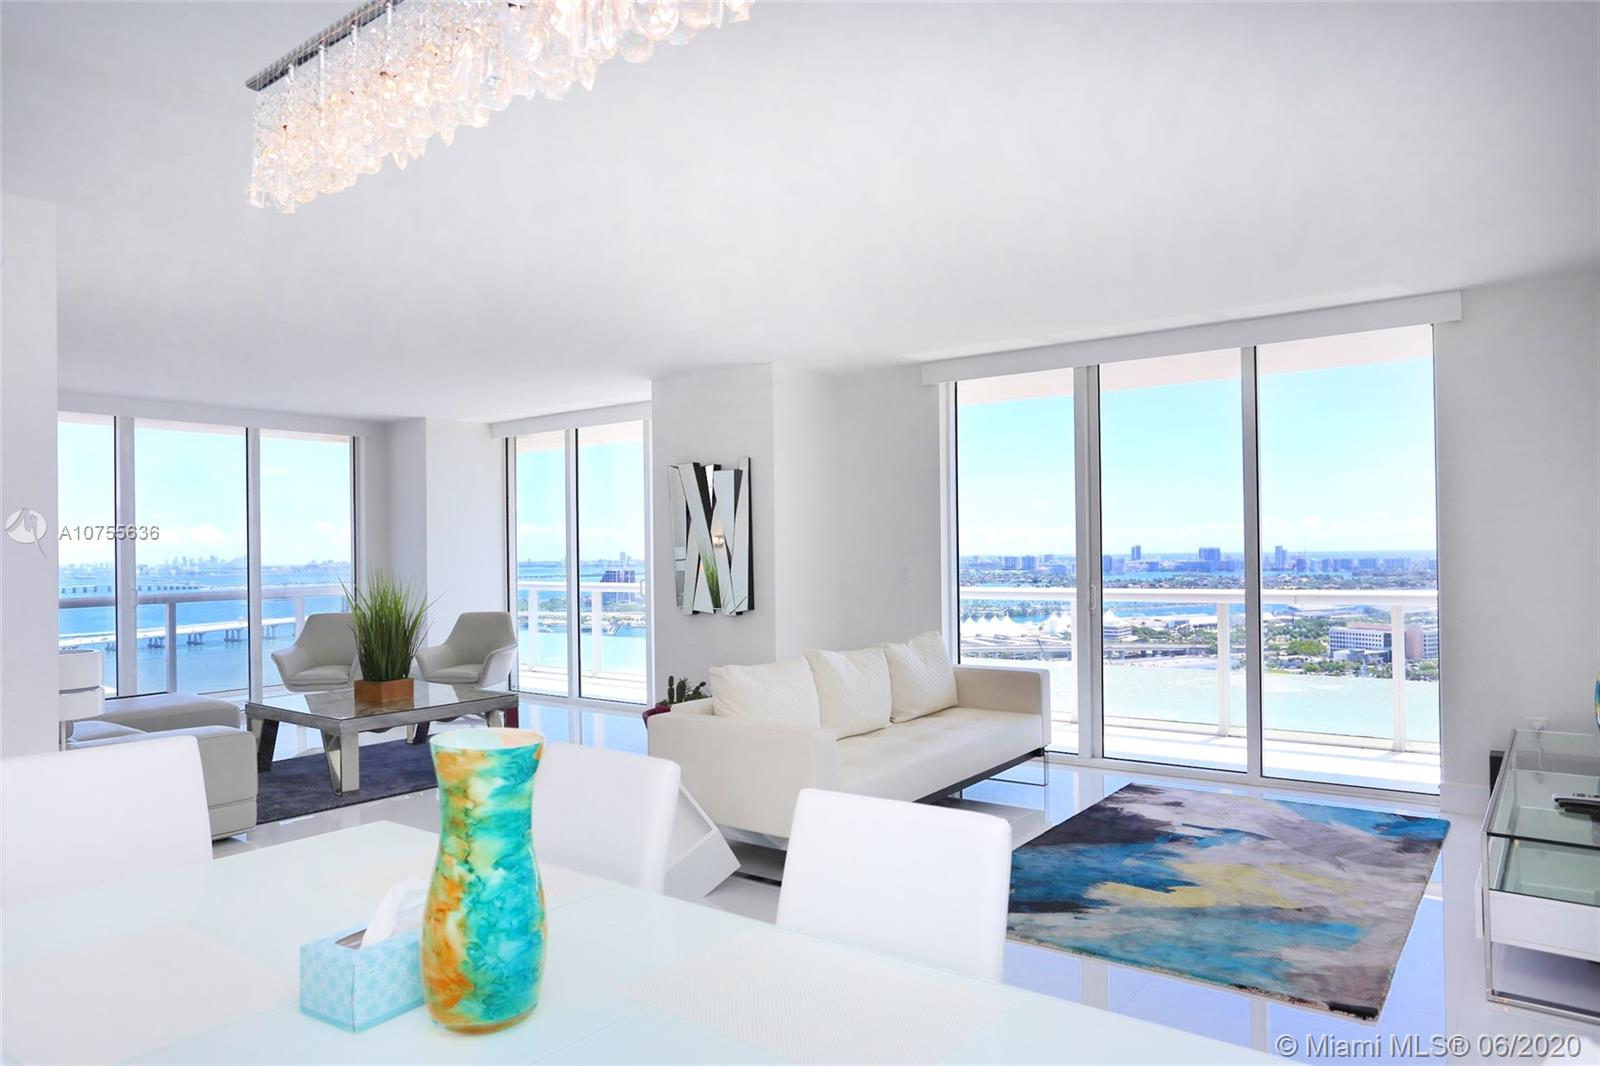 Enjoy the direct ocean and open bay views from this completely remodeled downtown unit. Walking distance to Arena, Bayside shops, Brickell City Center and more.